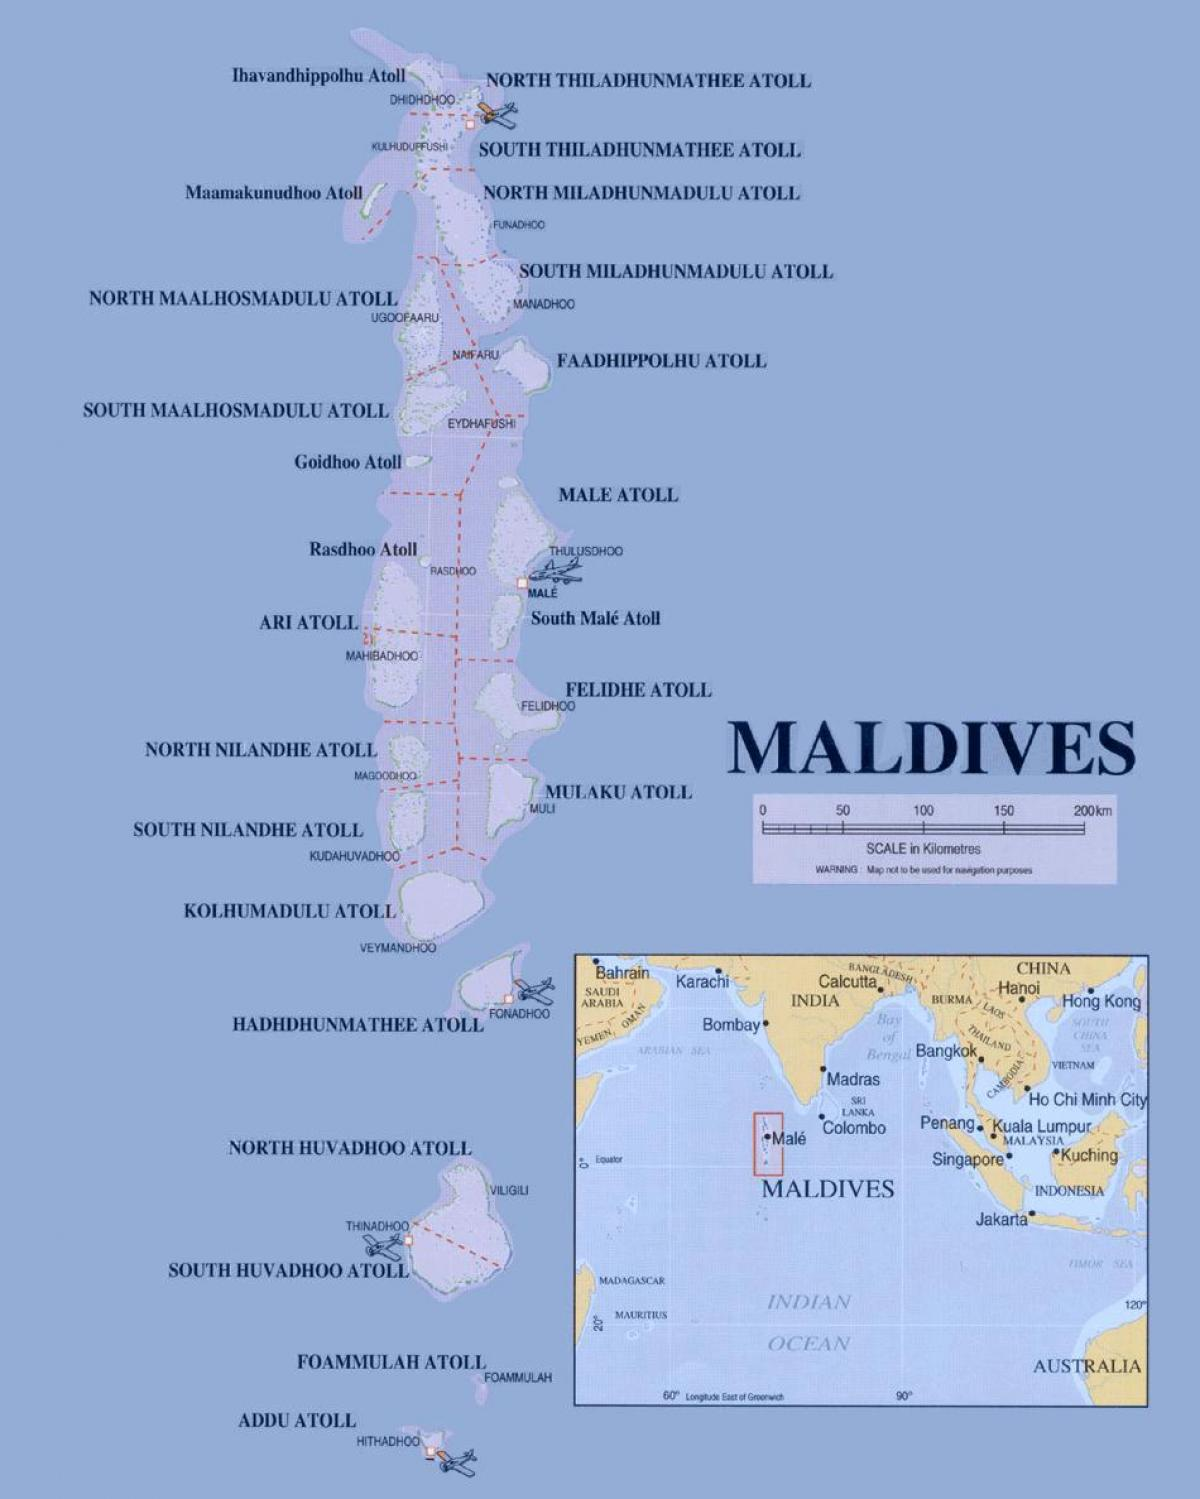 map showing maldives